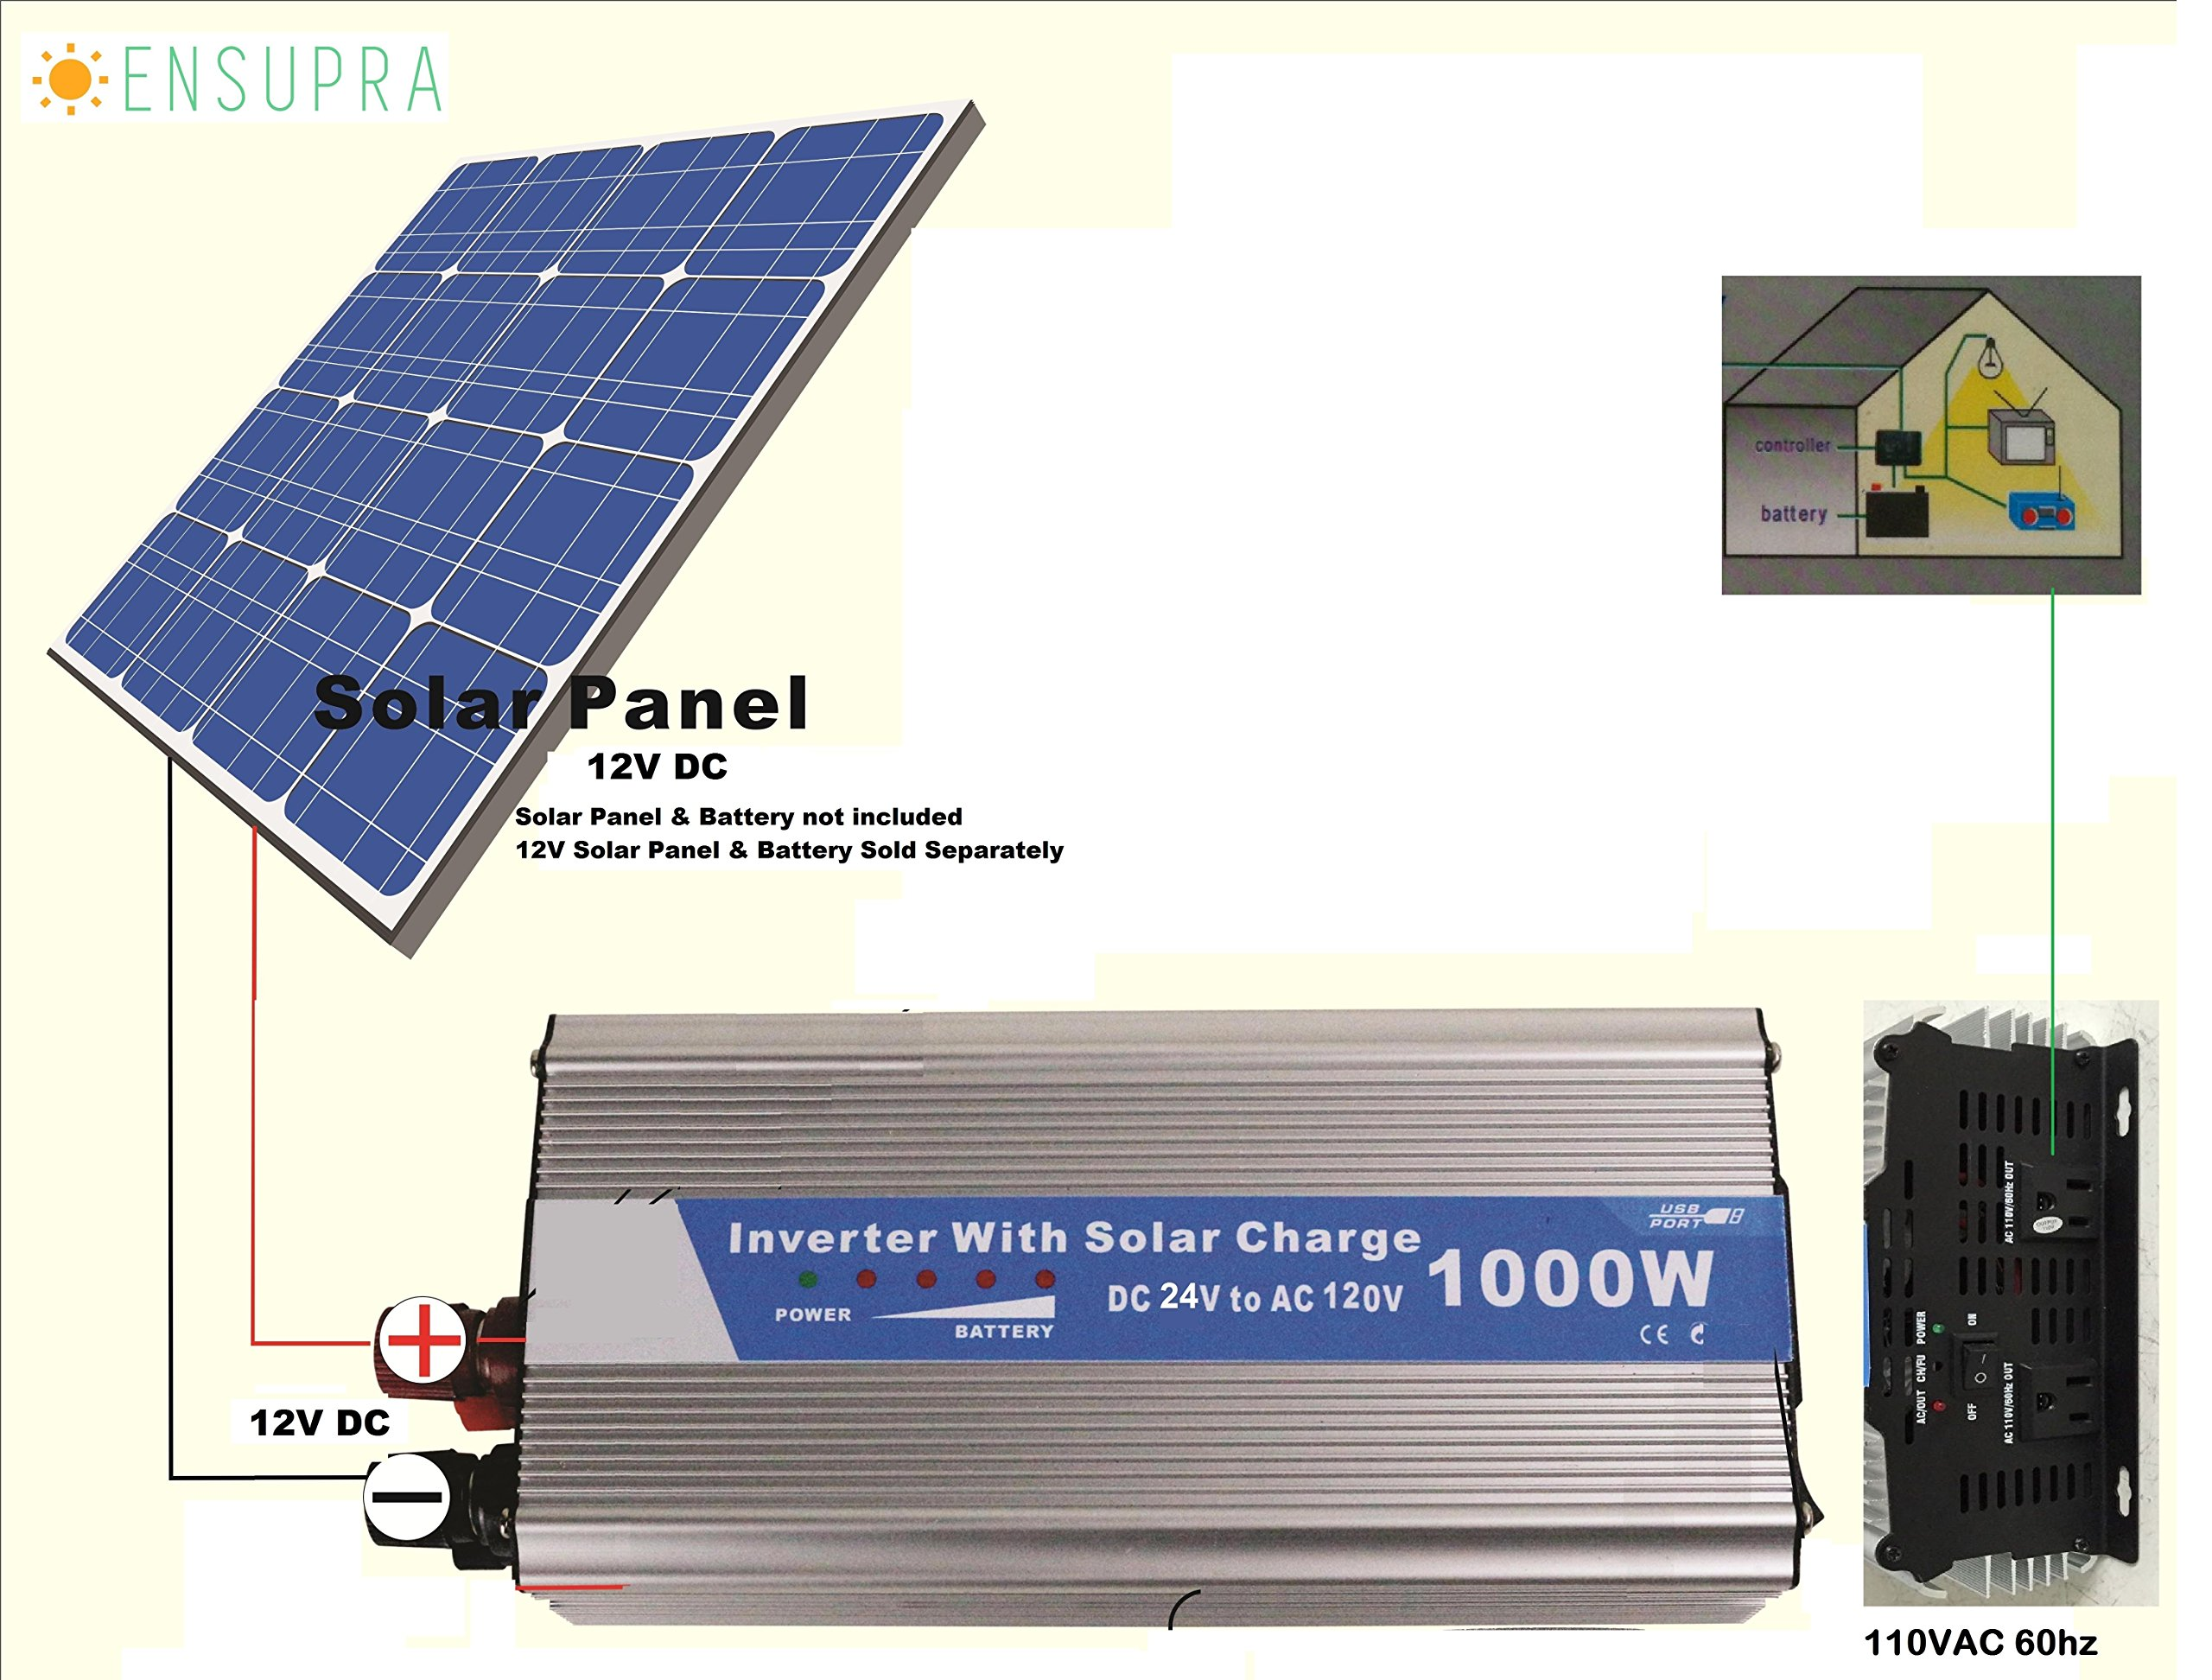 Ensupra Solar Power Inverter with Built-in Solar Controller, PWM; 1000W, 12VDC to 110Vac Modified Sinewave; Plug & Play Solar; Simply Connect 12V Solar Panel & A Battery (ESI12V1K) by Ensupra